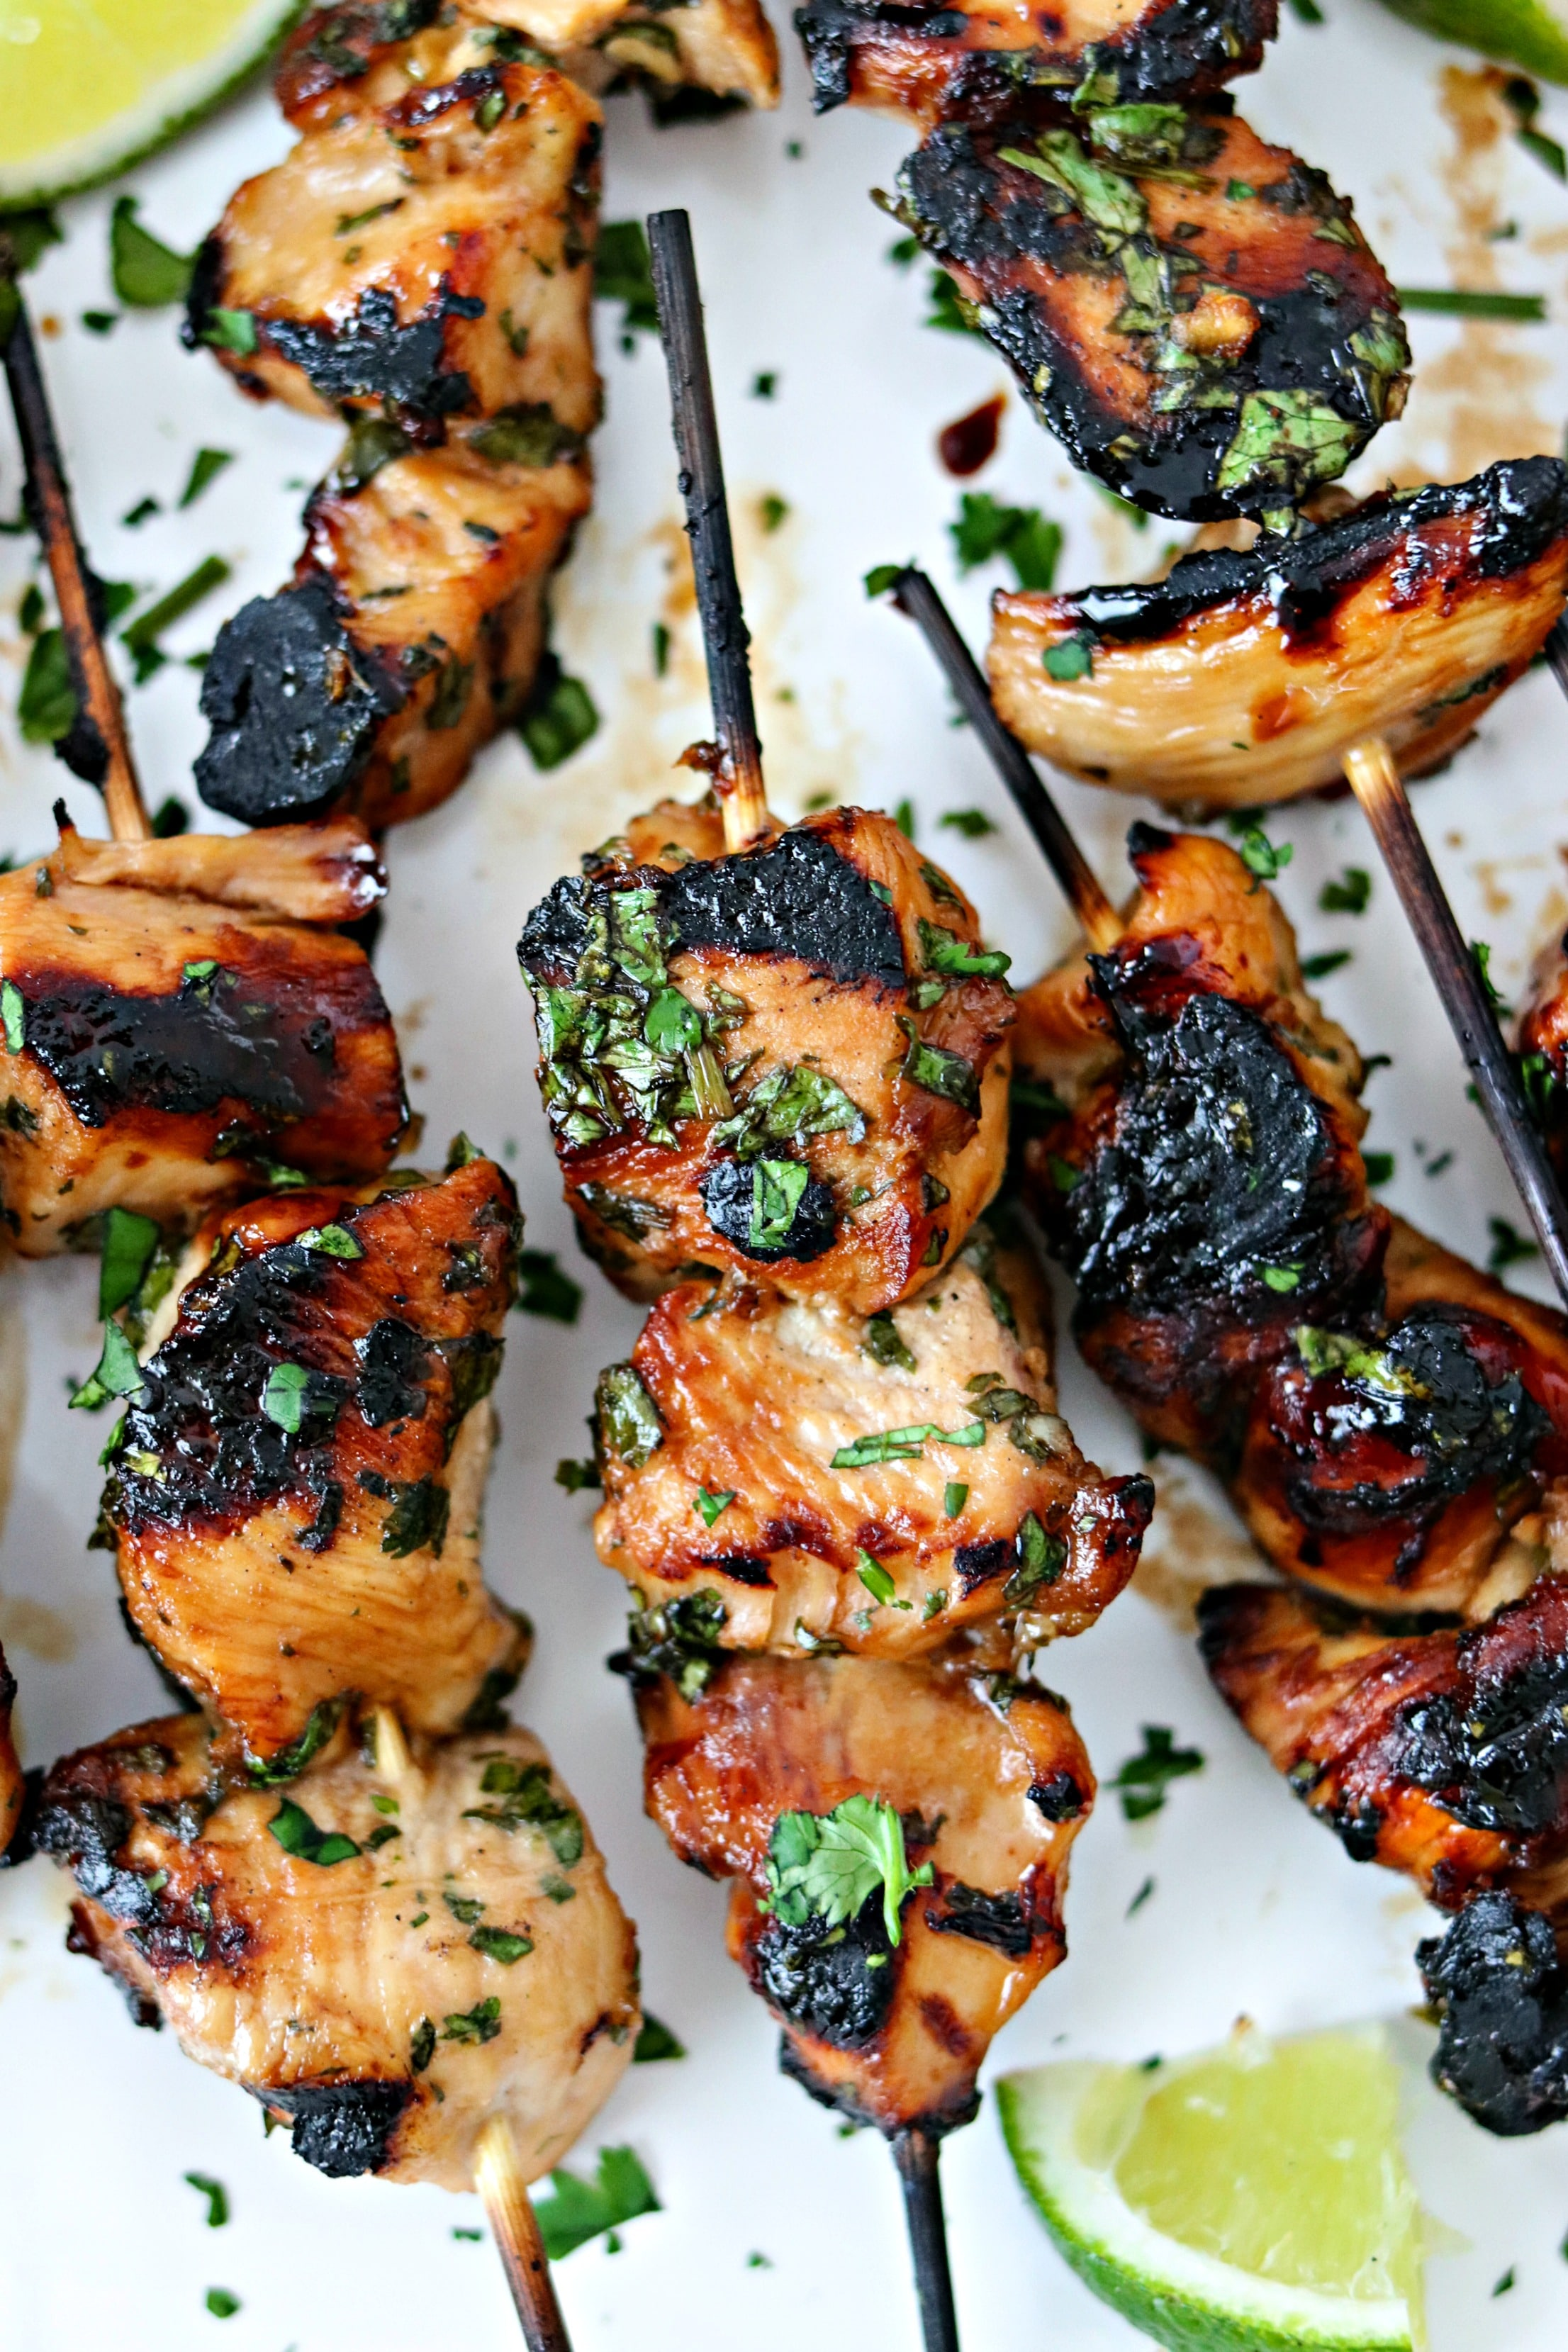 Finished Grilled Cilantro Lime Chicken Skewers